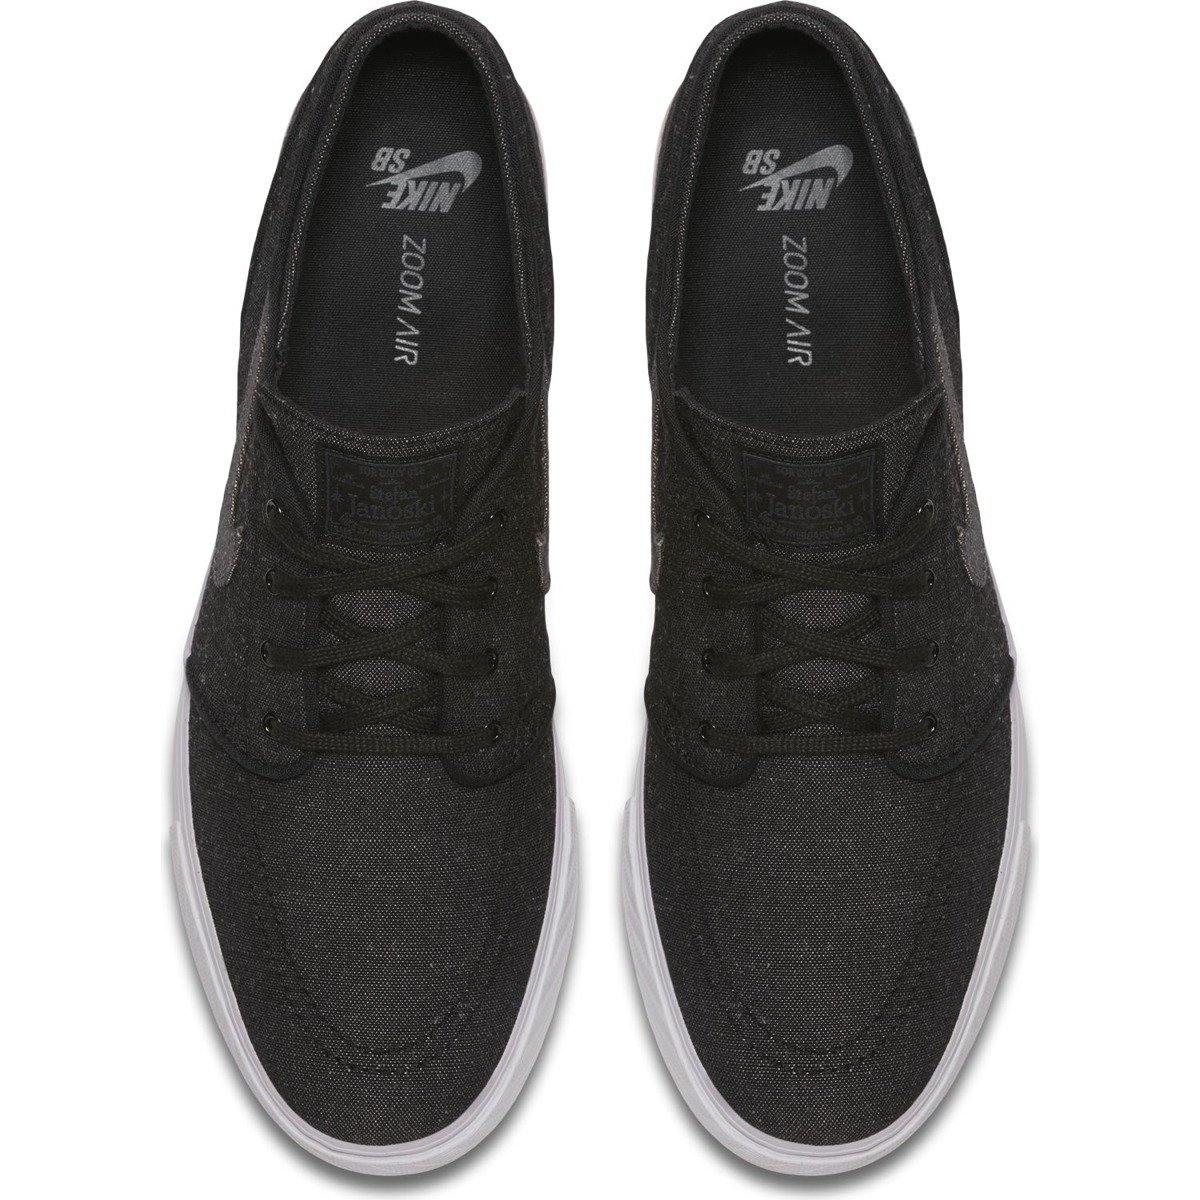 timeless design 1fb93 7aaf7 ... janoski canvas deconstructed black anthracite-white-hyper royal Click  to zoom ...